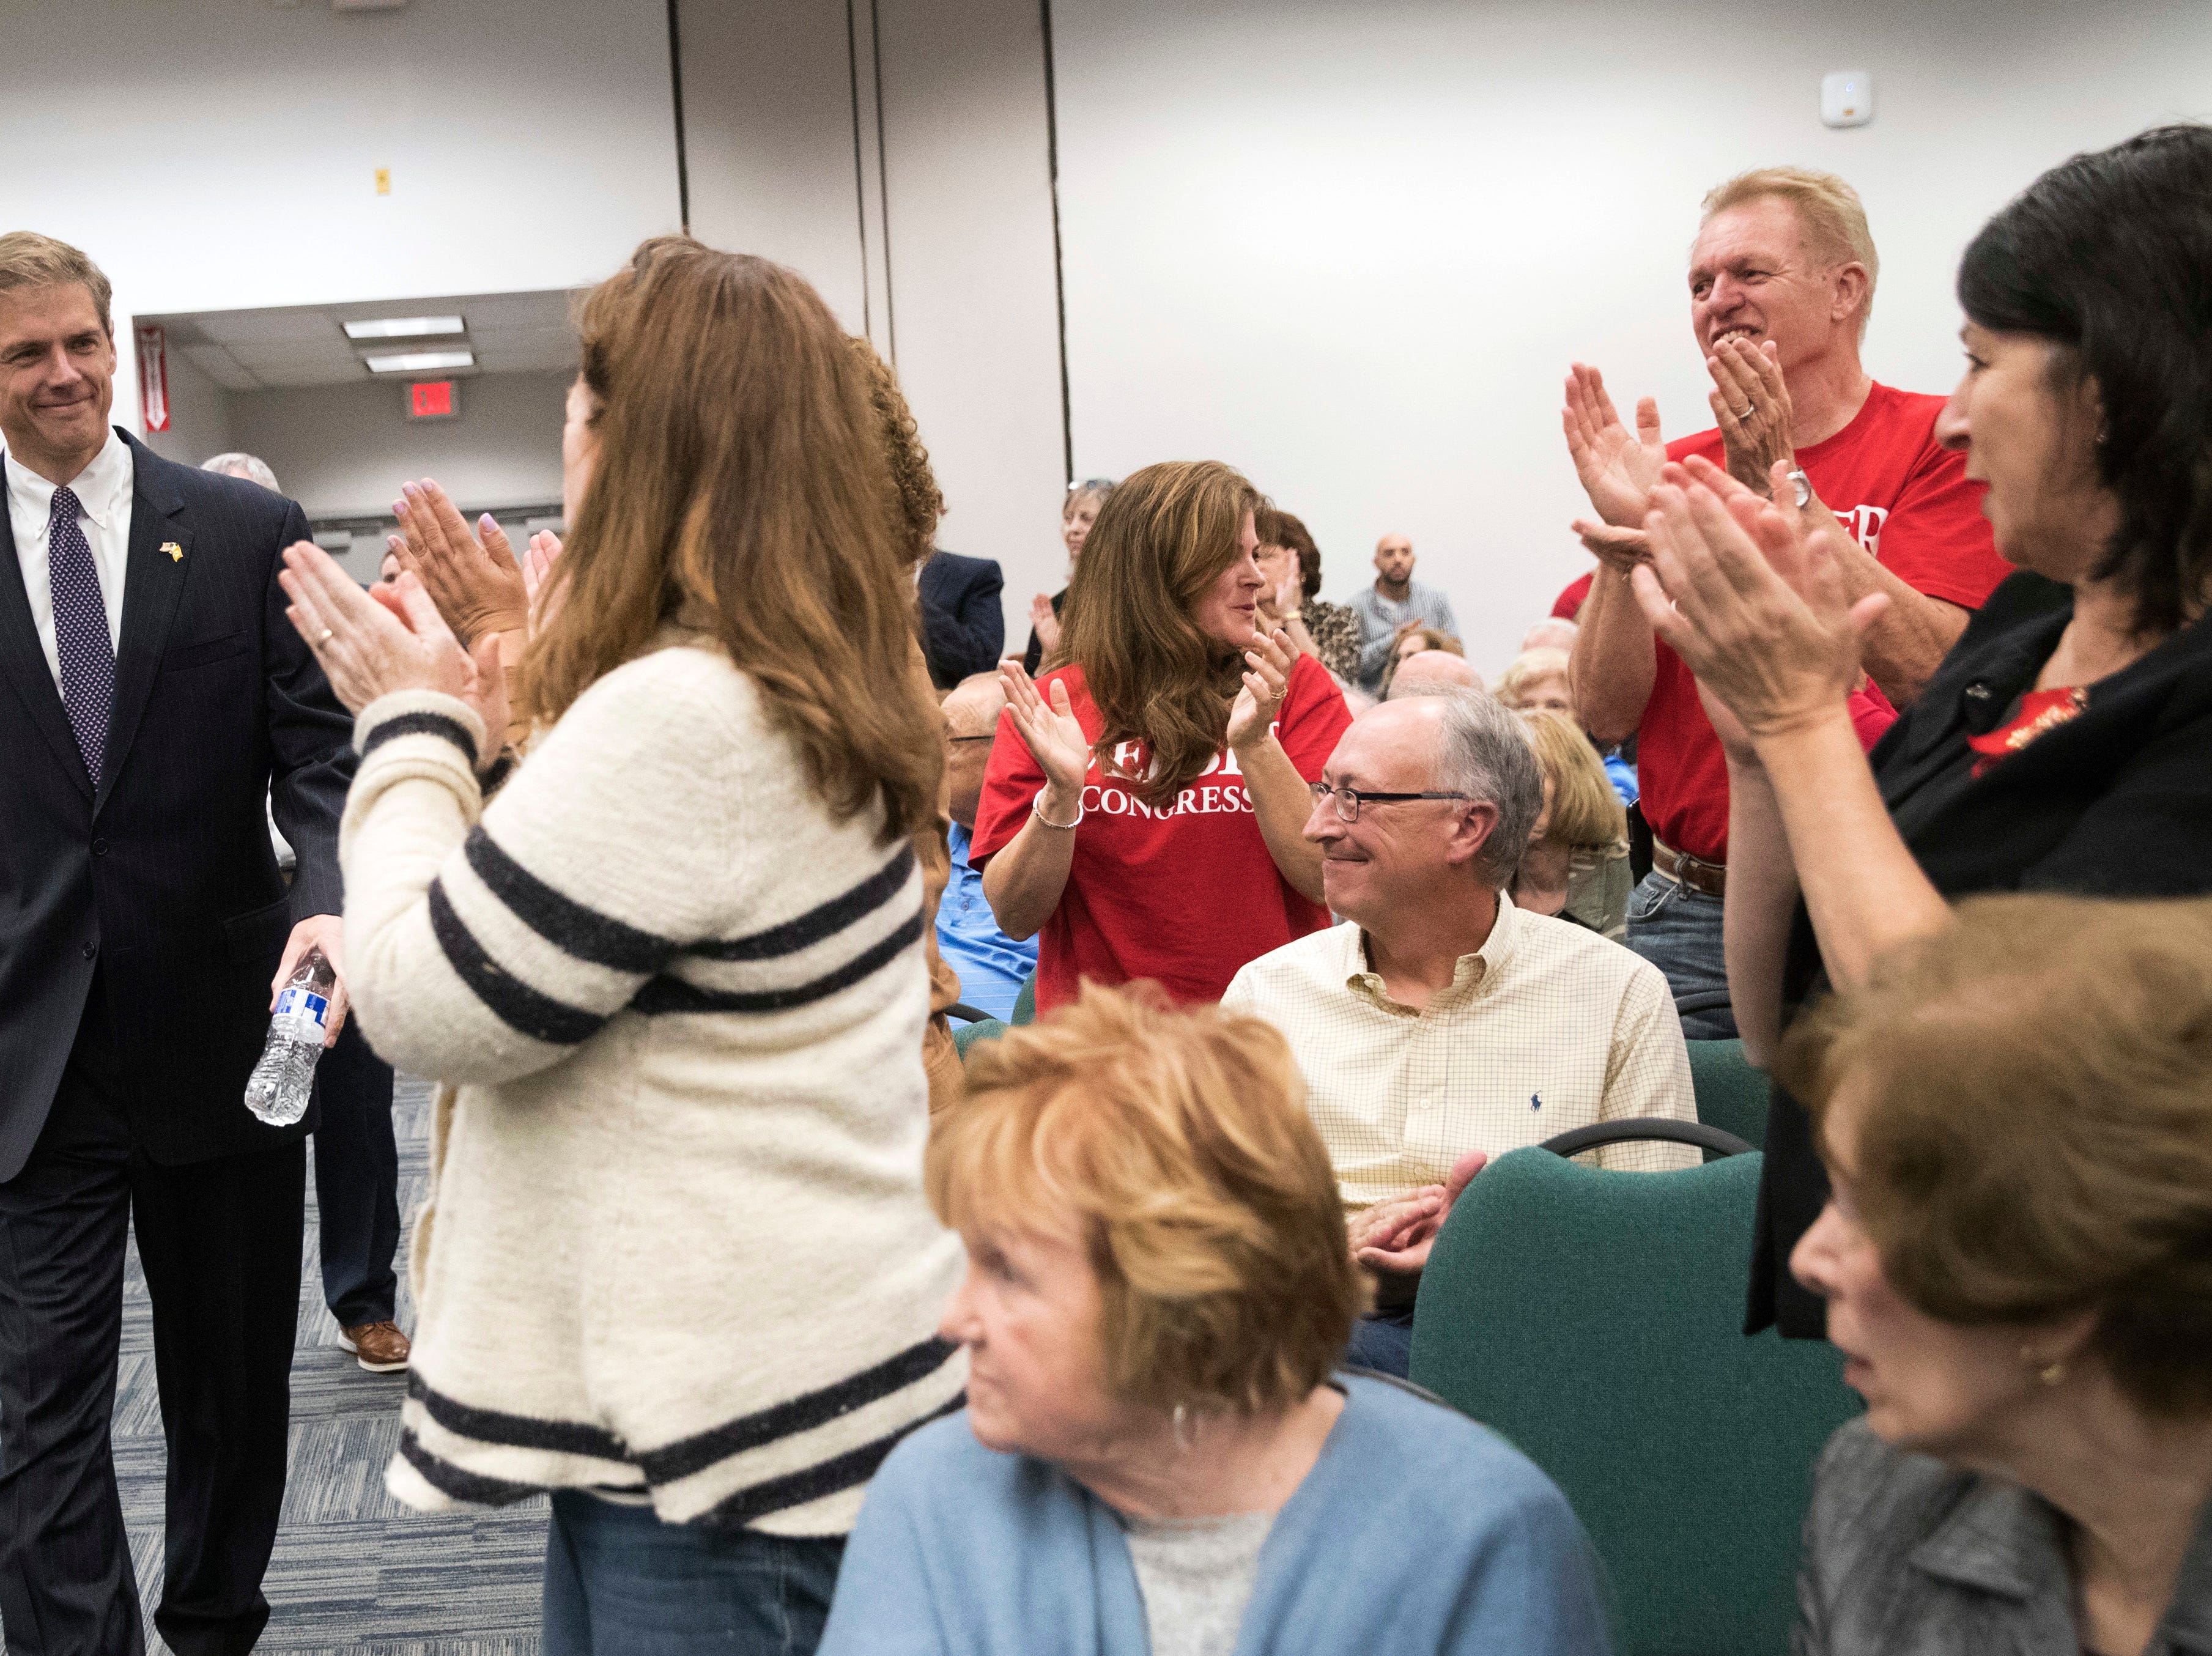 Supporters of Republican Assemblyman Jay Webber cheer as he arrives for a candidate forum at the UJC of MetroWest New Jersey, Tuesday, Oct. 9, 2018, in Whippany, N.J. (AP Photo/Mary Altaffer)